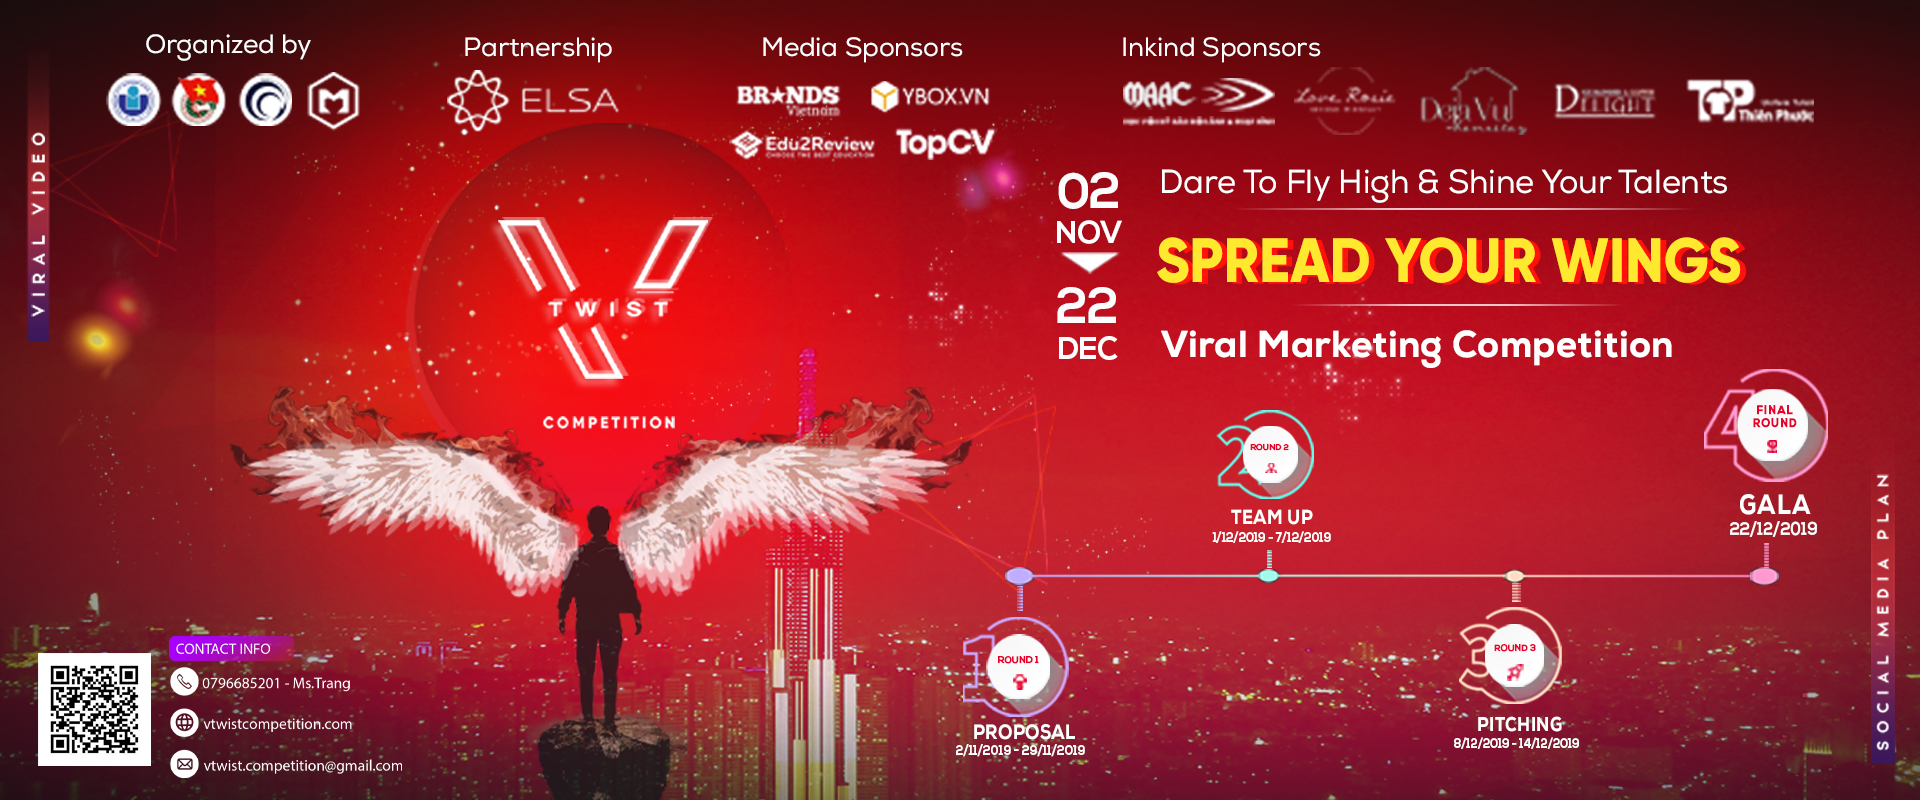 V TWIST COMPETITION 2019 | SPREAD YOUR WINGS